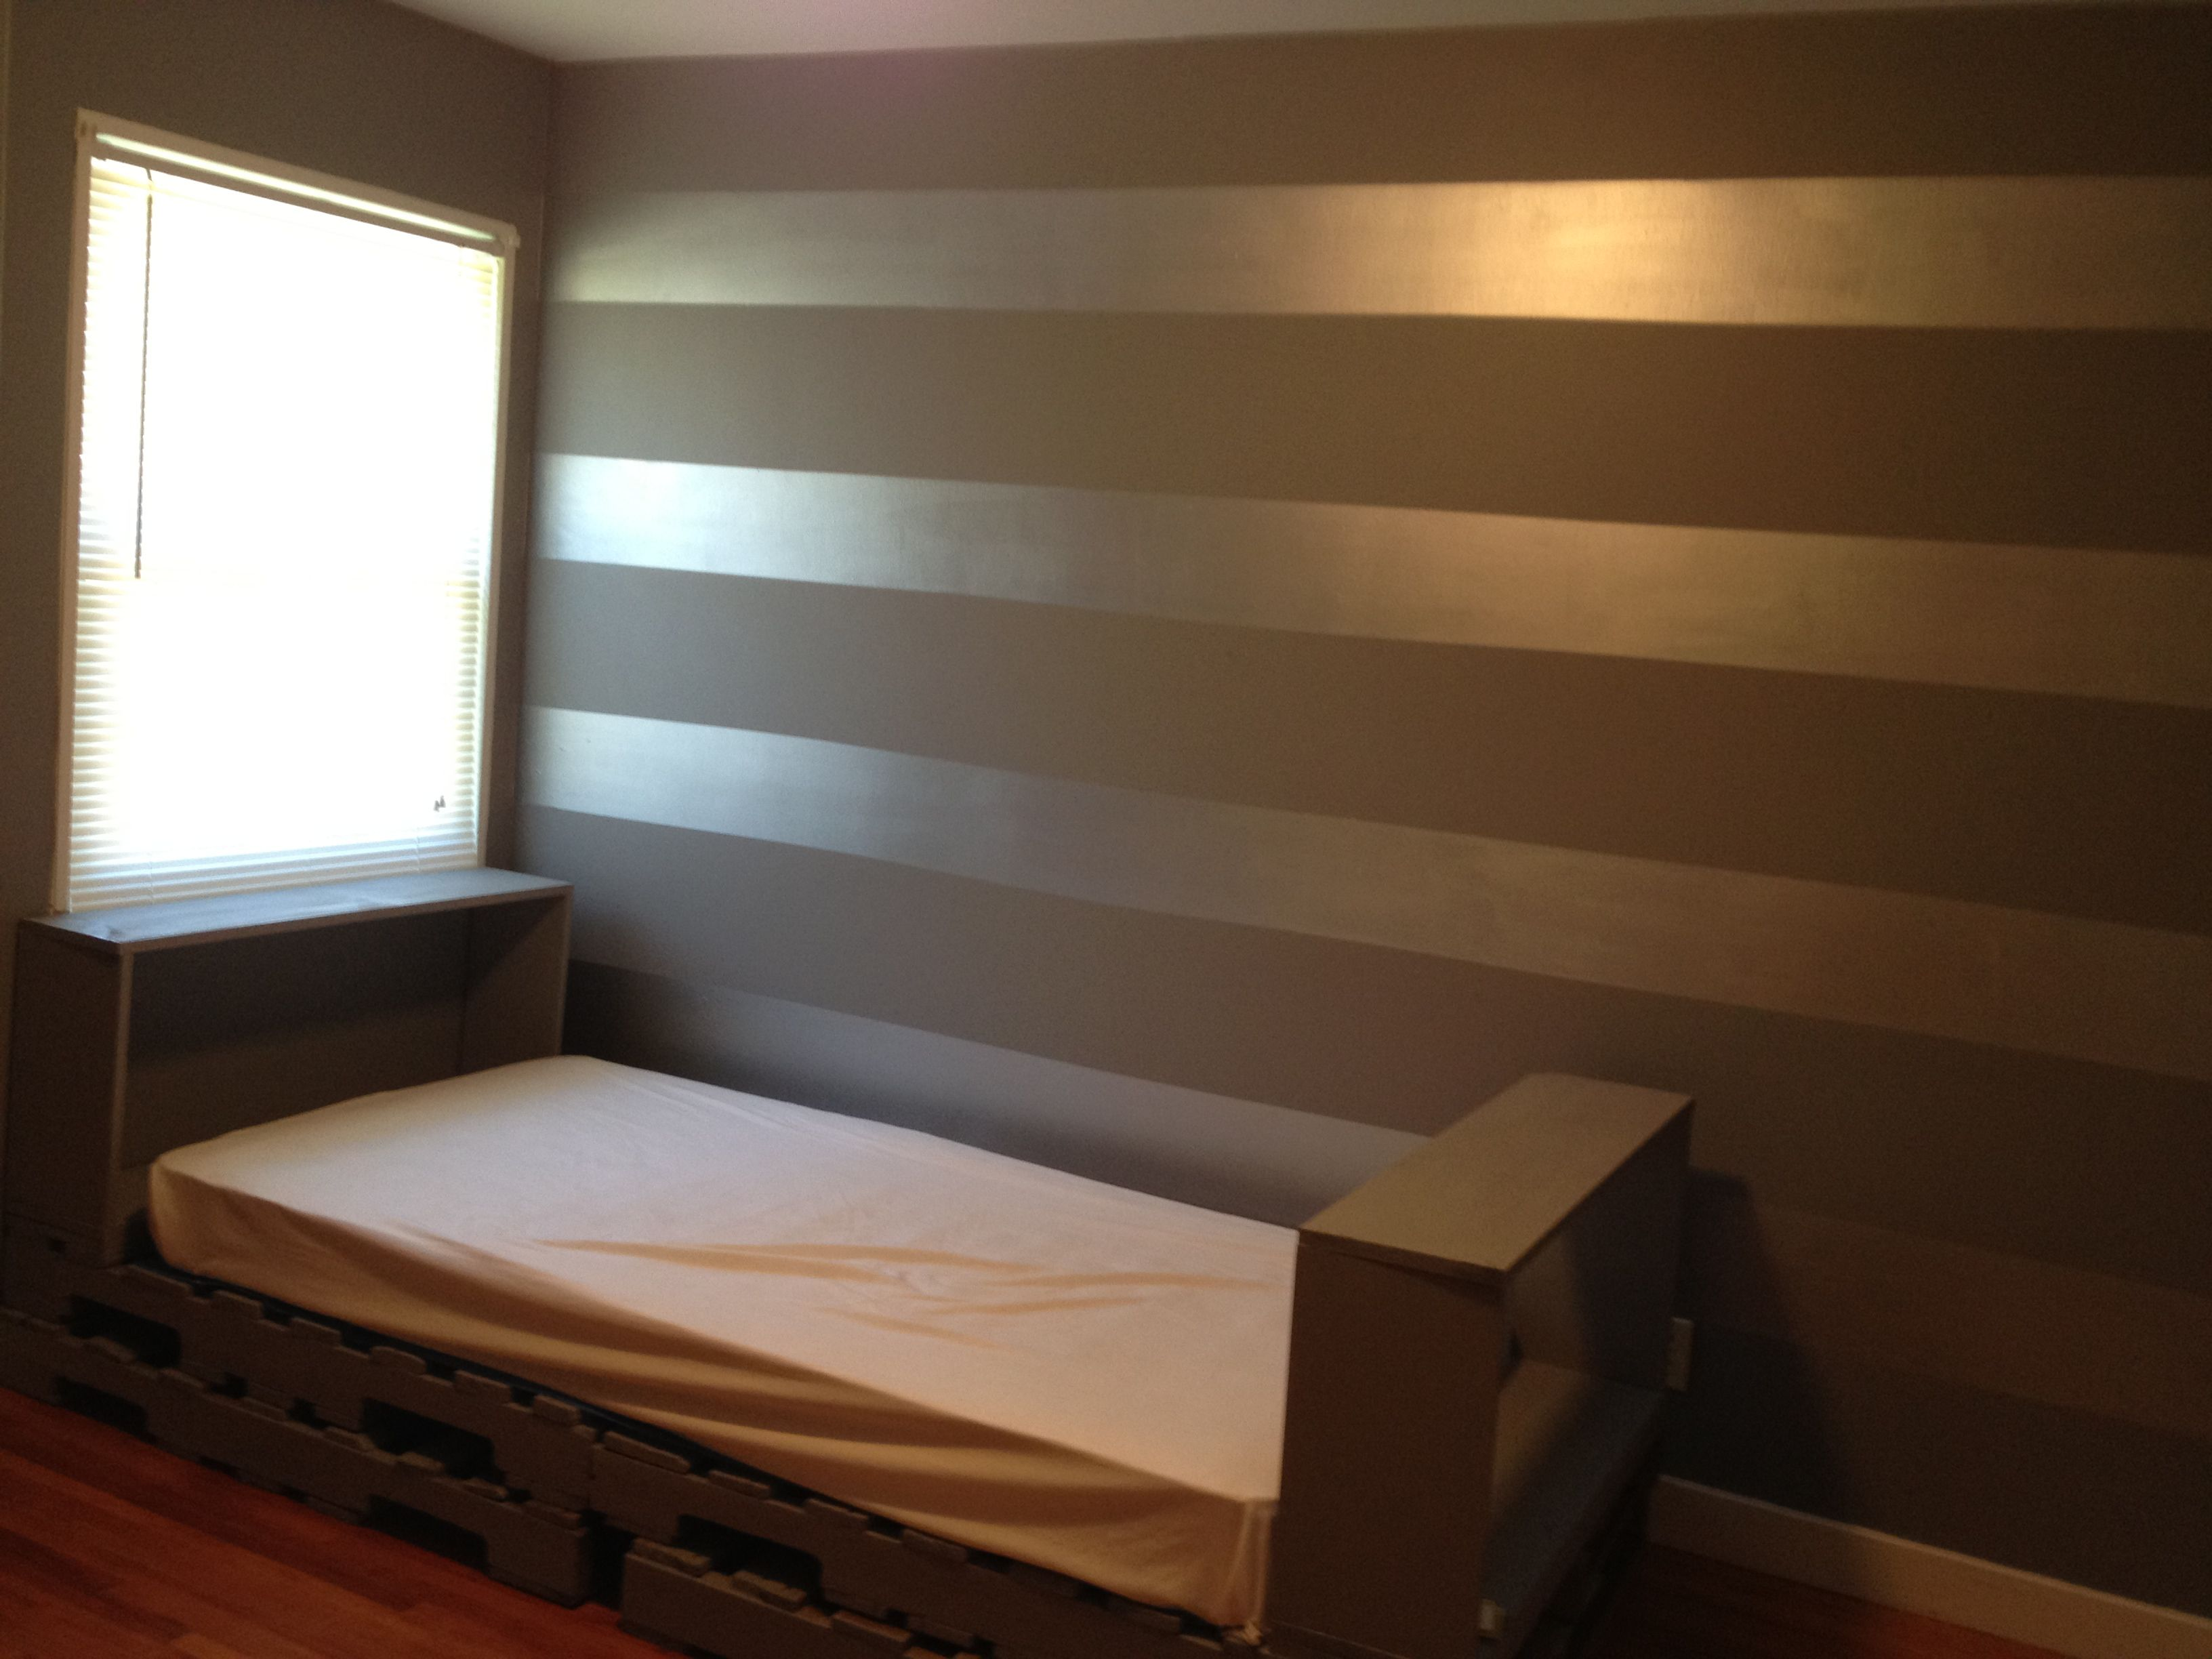 Copper Accent Wall Pallet Day Bed And Metallic Striped Walls For The